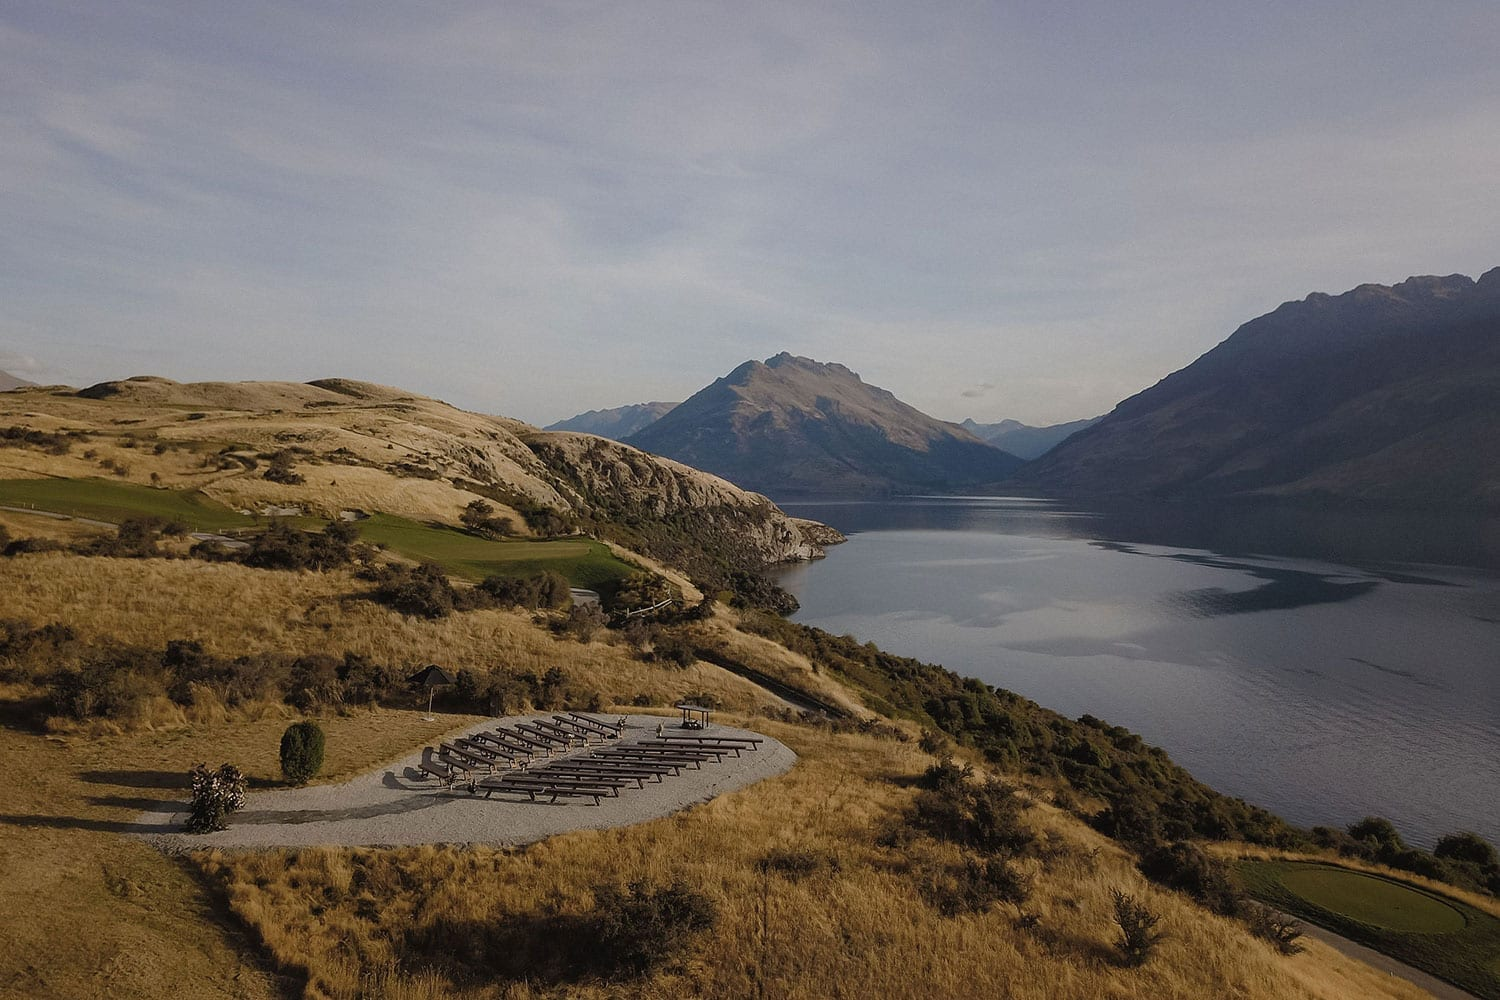 Vinka Design Features Real Weddings - outdoor ceremony set up with panoramic scenic views in New Zealand